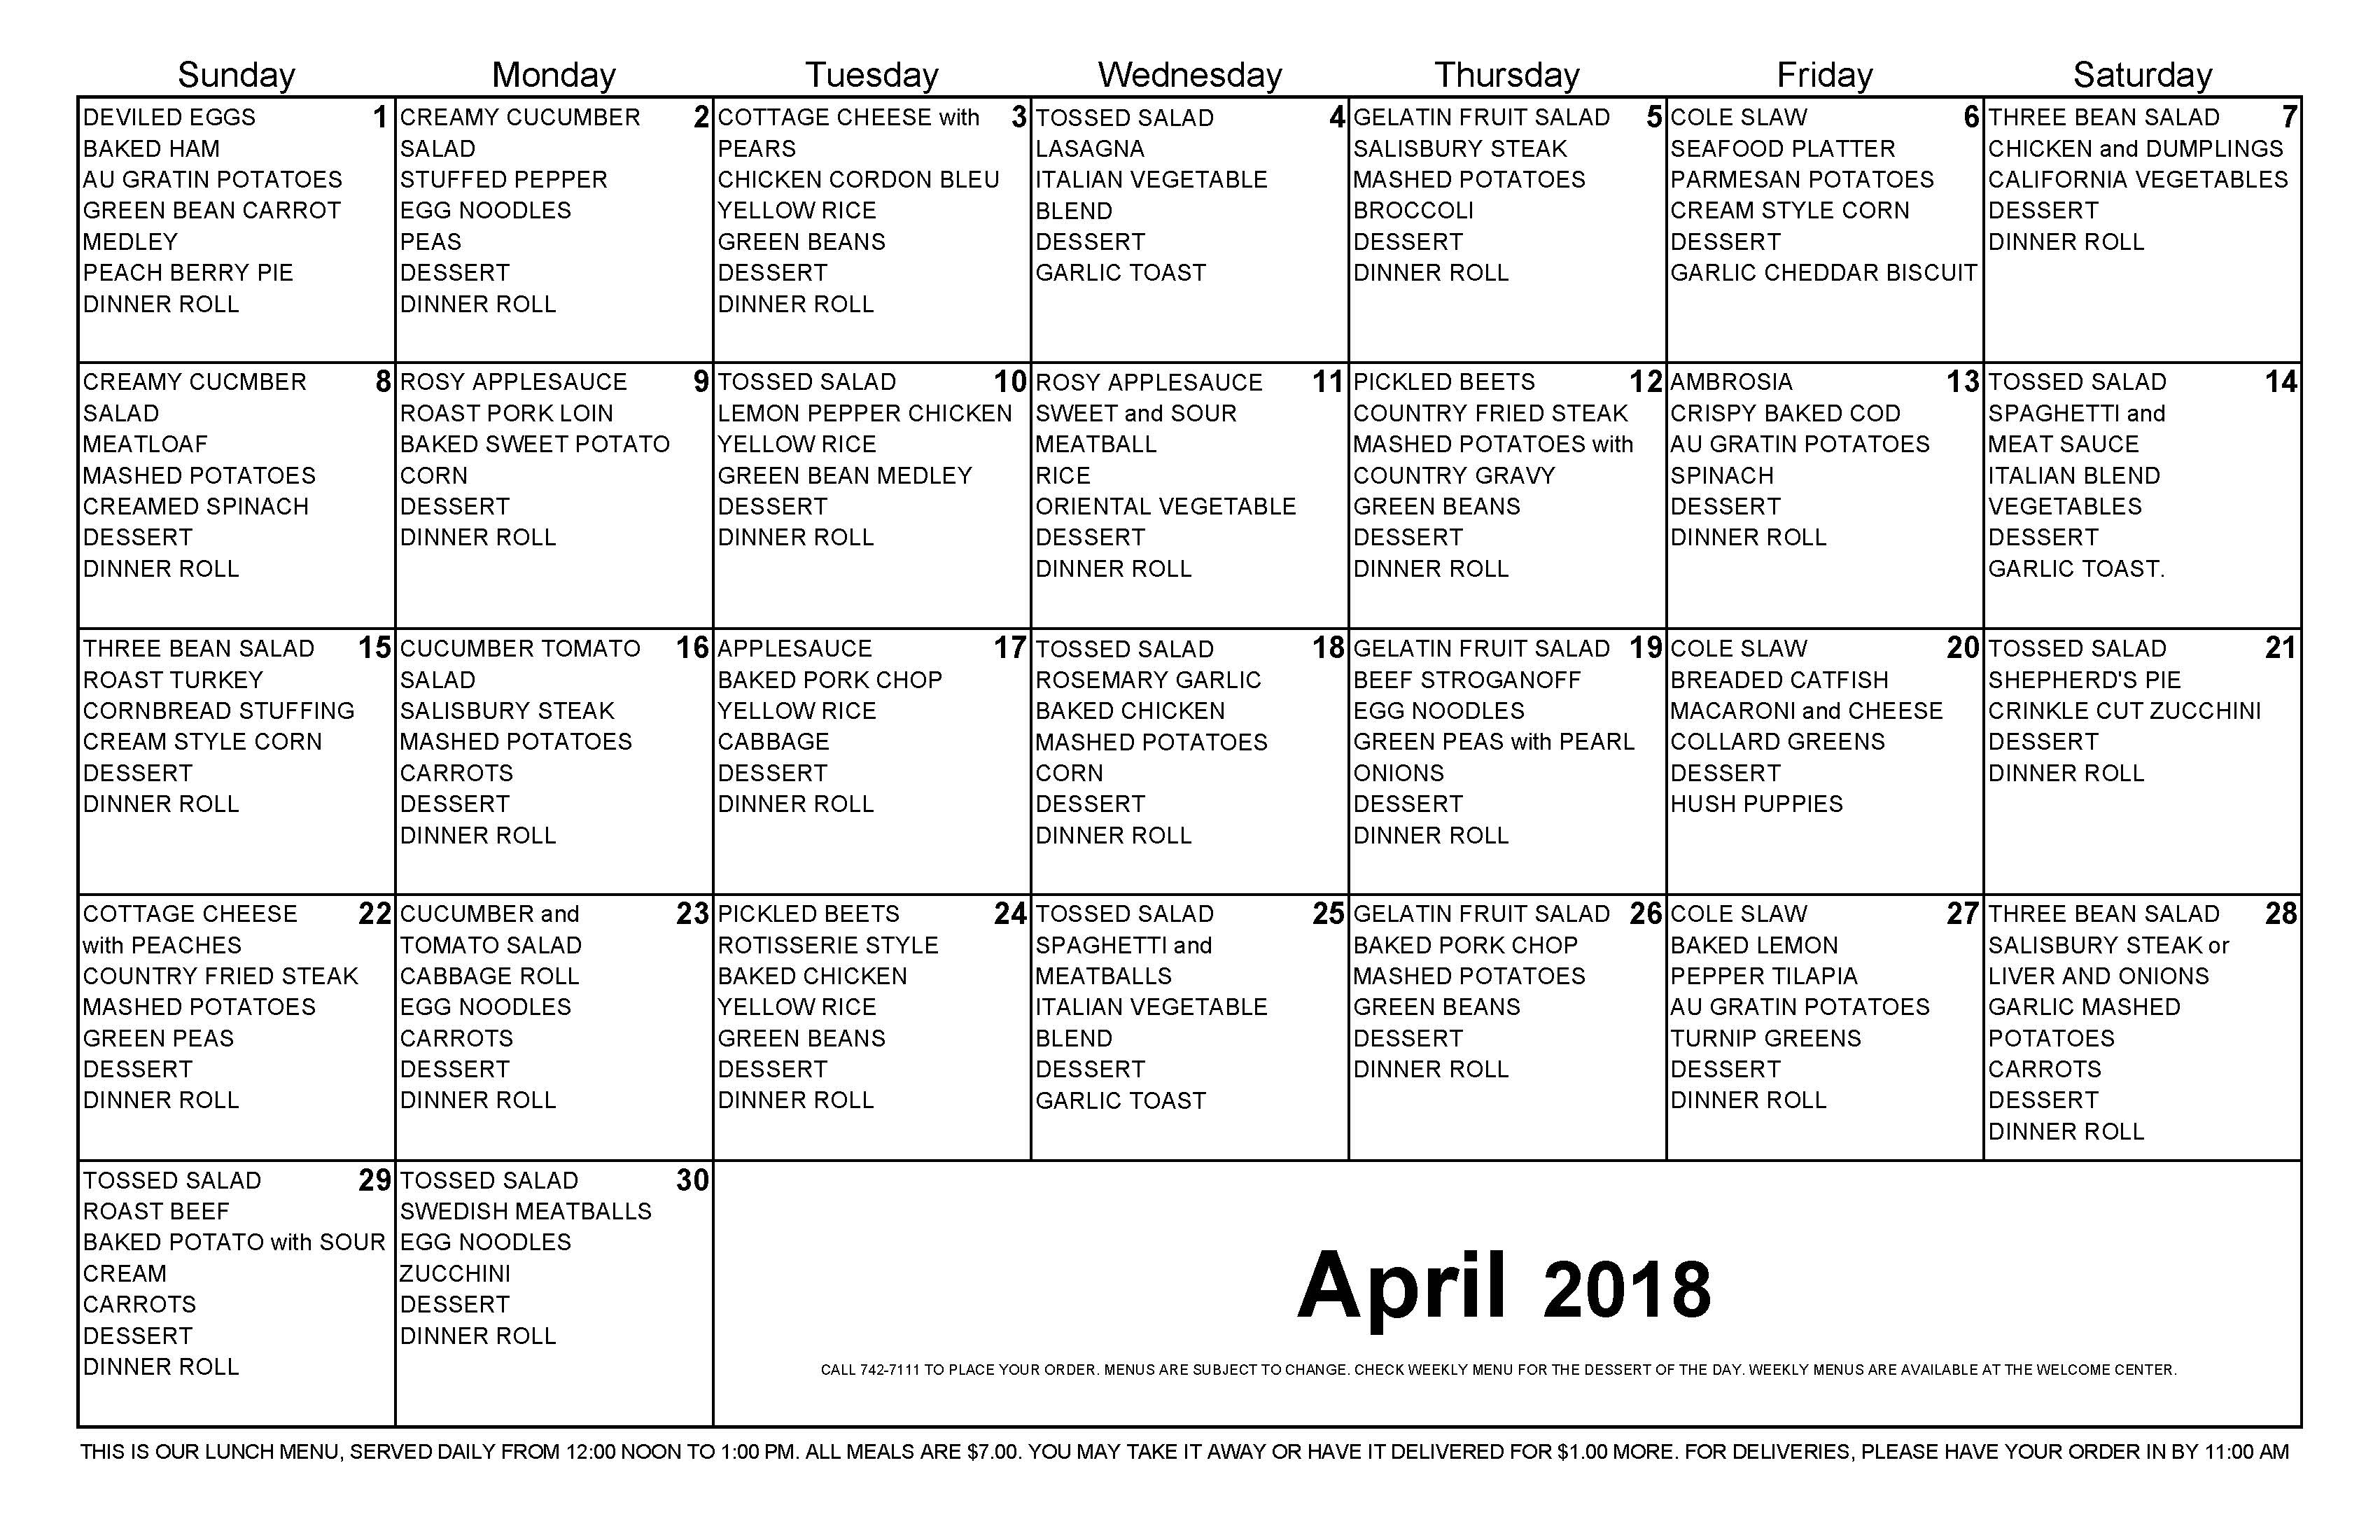 April 2018 Lunch Calendar for The Cove Assisted and Independent Living Tavares Florida